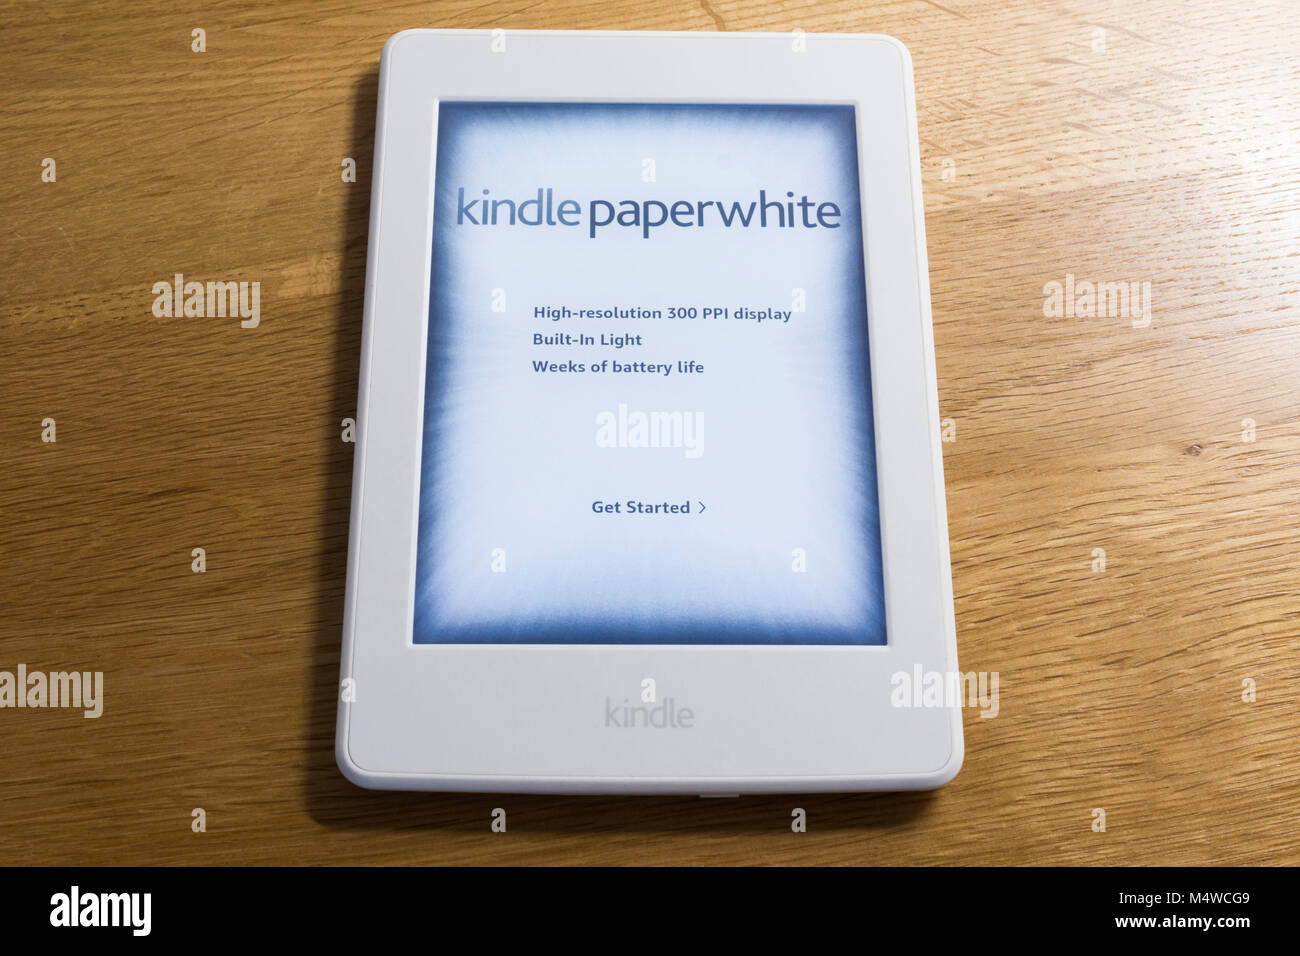 Kindle Reader Stock Photos & Kindle Reader Stock Images - Alamy